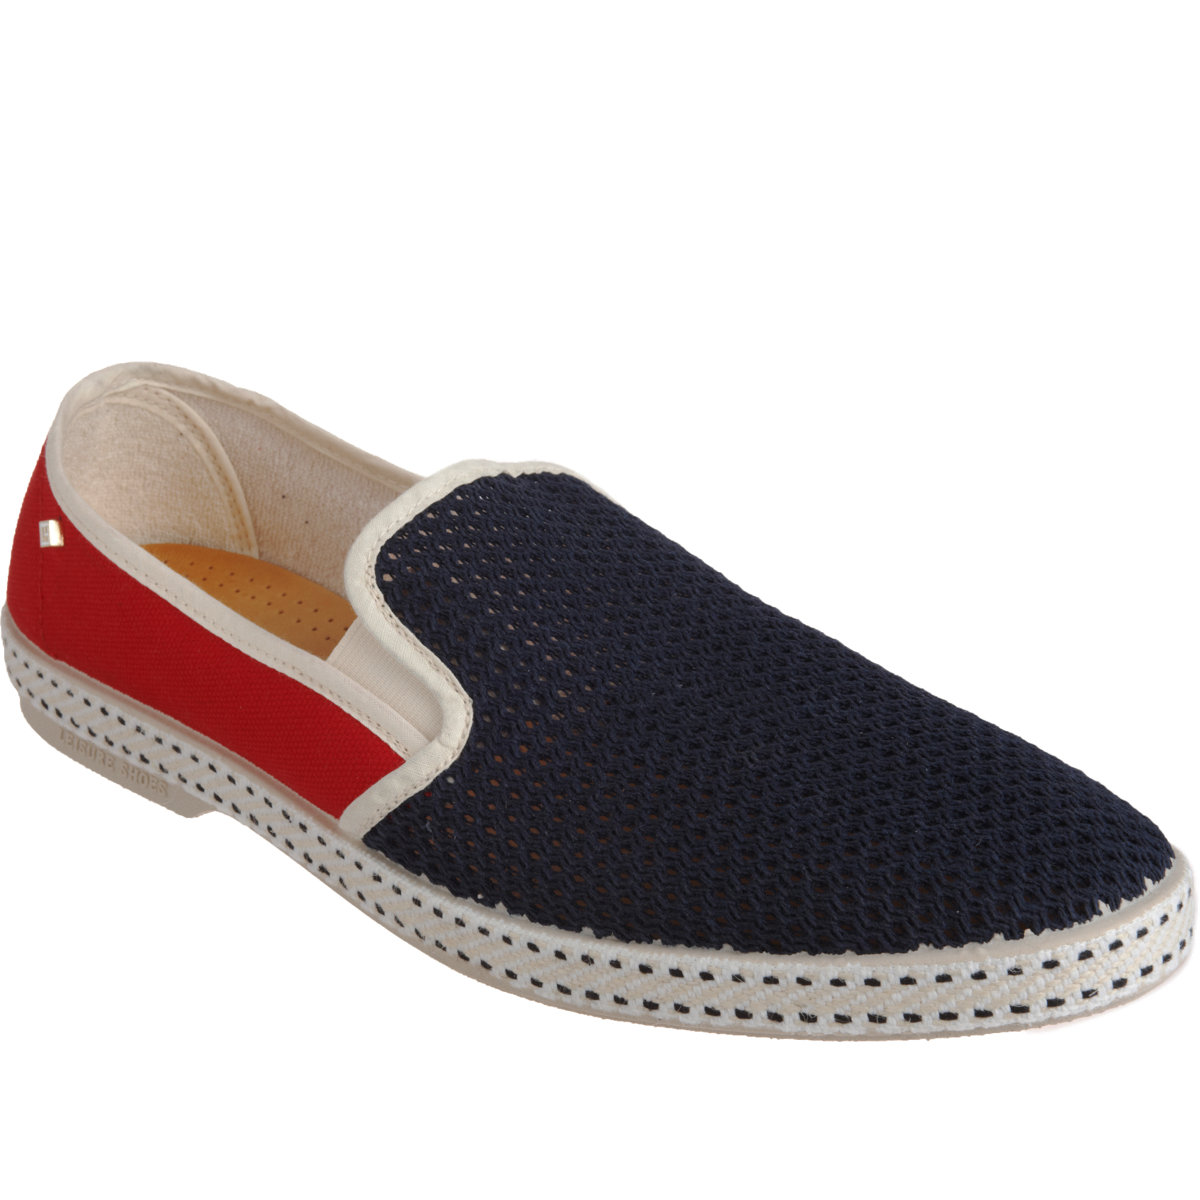 riviera shoes shoes for yourstyles